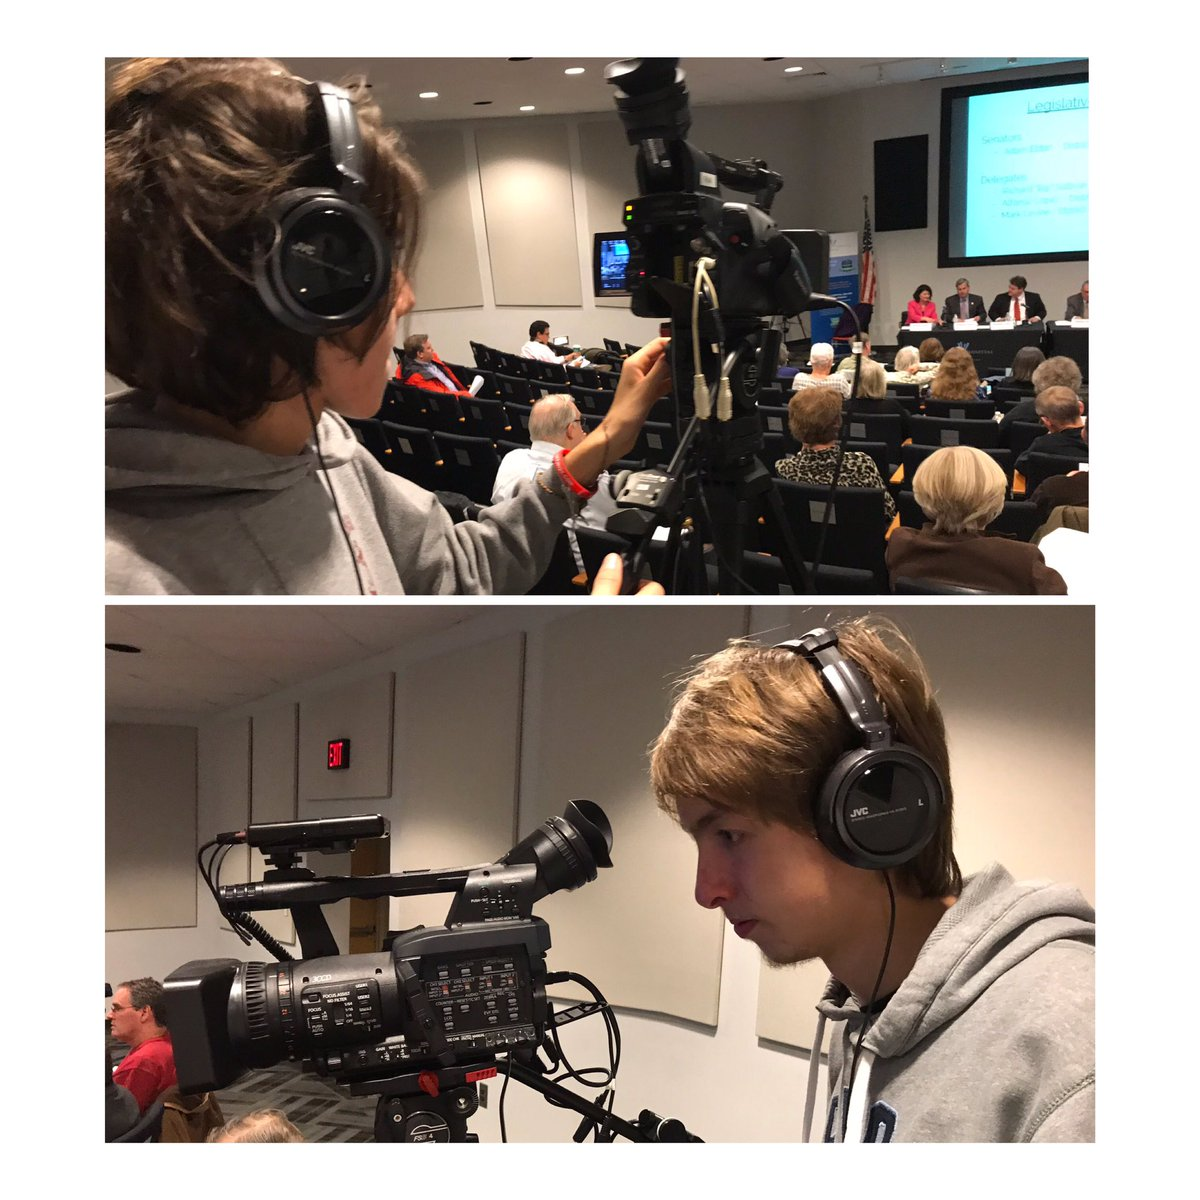 Arlington Tech TV Production students    Emilio and Seb are recording the ACCF monthly meeting at the Va. Hospital Center. <a target='_blank' href='http://twitter.com/arlingtontechcc'>@arlingtontechcc</a> <a target='_blank' href='http://twitter.com/CharlesRandolp3'>@CharlesRandolp3</a> <a target='_blank' href='http://twitter.com/Margaretchungcc'>@Margaretchungcc</a> <a target='_blank' href='https://t.co/6dYxePupyM'>https://t.co/6dYxePupyM</a>